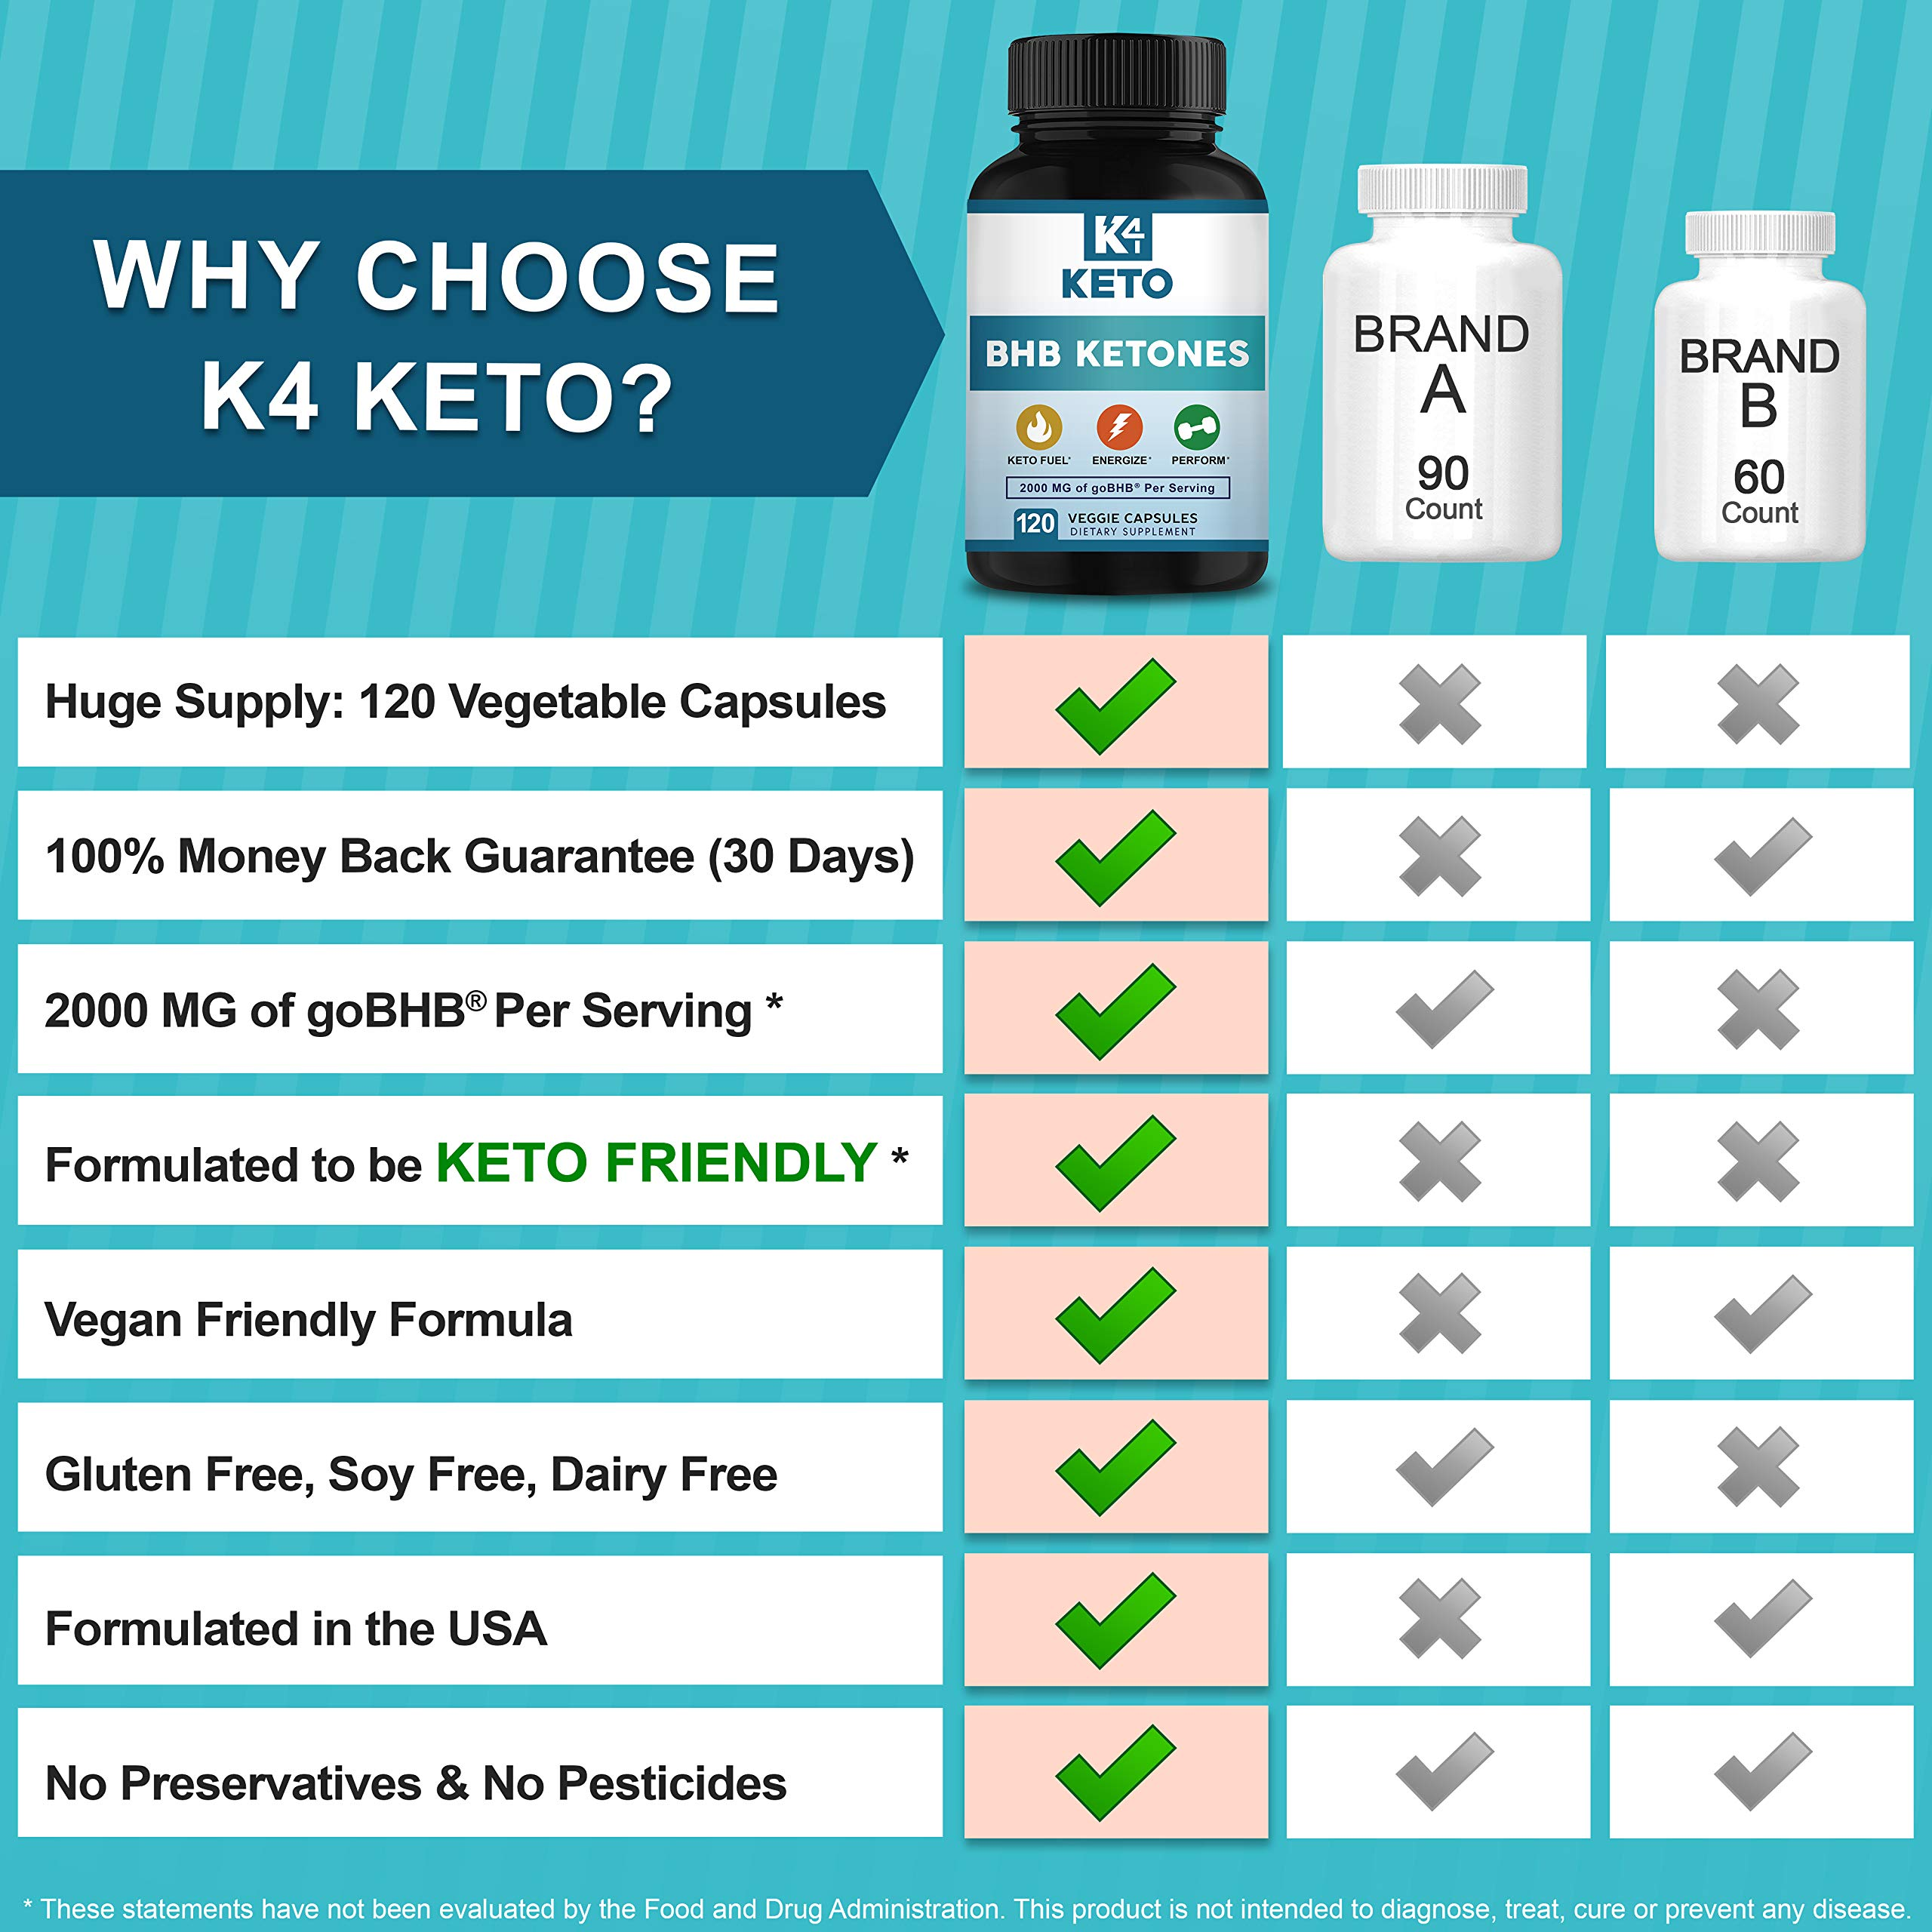 K4 Keto BHB - Exogenous Ketones BHB Salts Capsules - 2000mg of Patented goBHB Beta-Hydroxybutyrate - Ketone Supplement Pills to Support Ketogenic Diet & Ketosis by K4 Keto (Image #8)